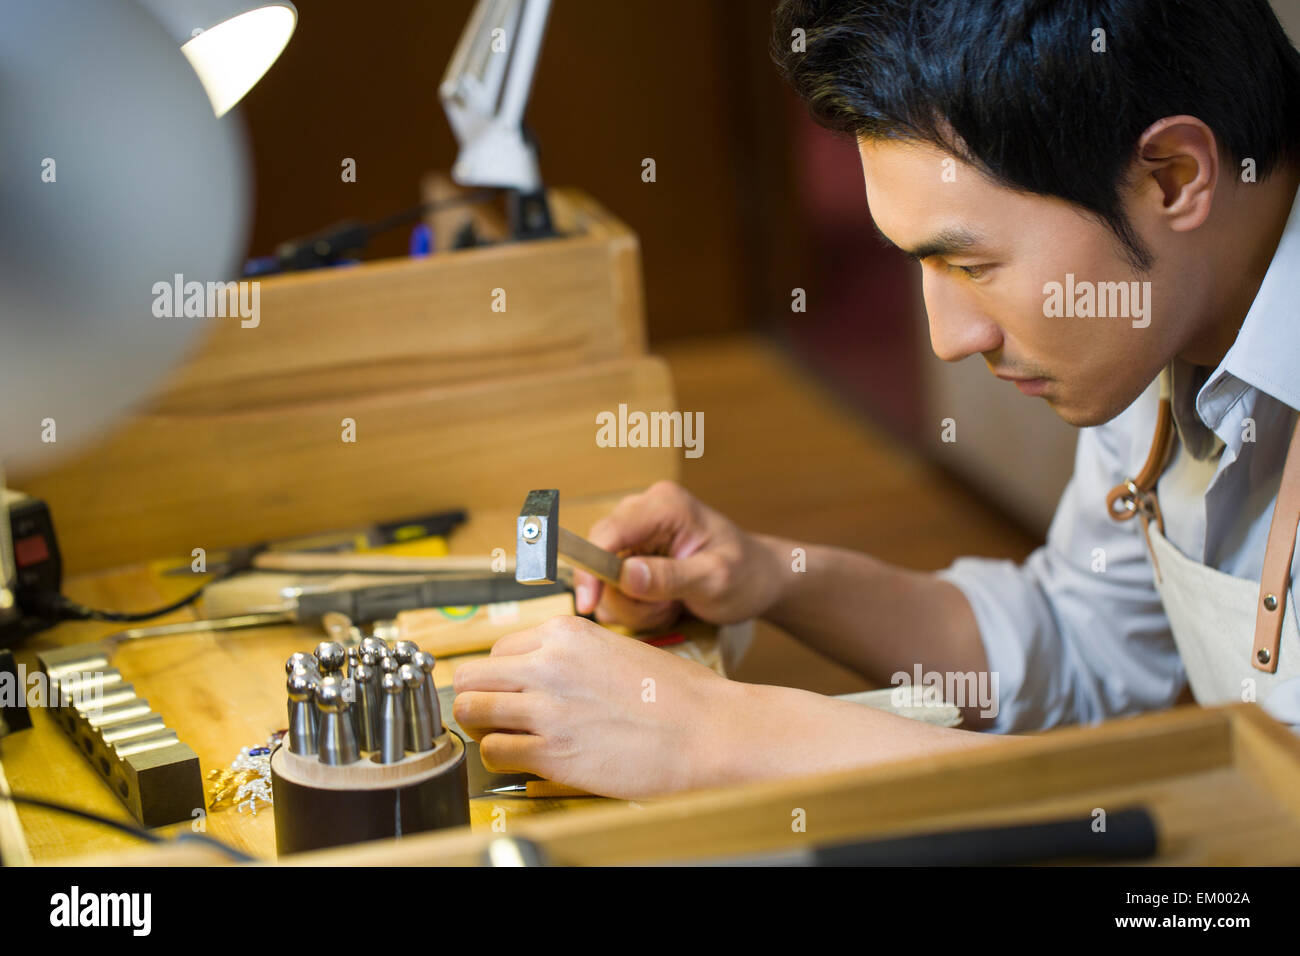 Male jeweler working in studio Stock Photo: 81134658 - Alamy